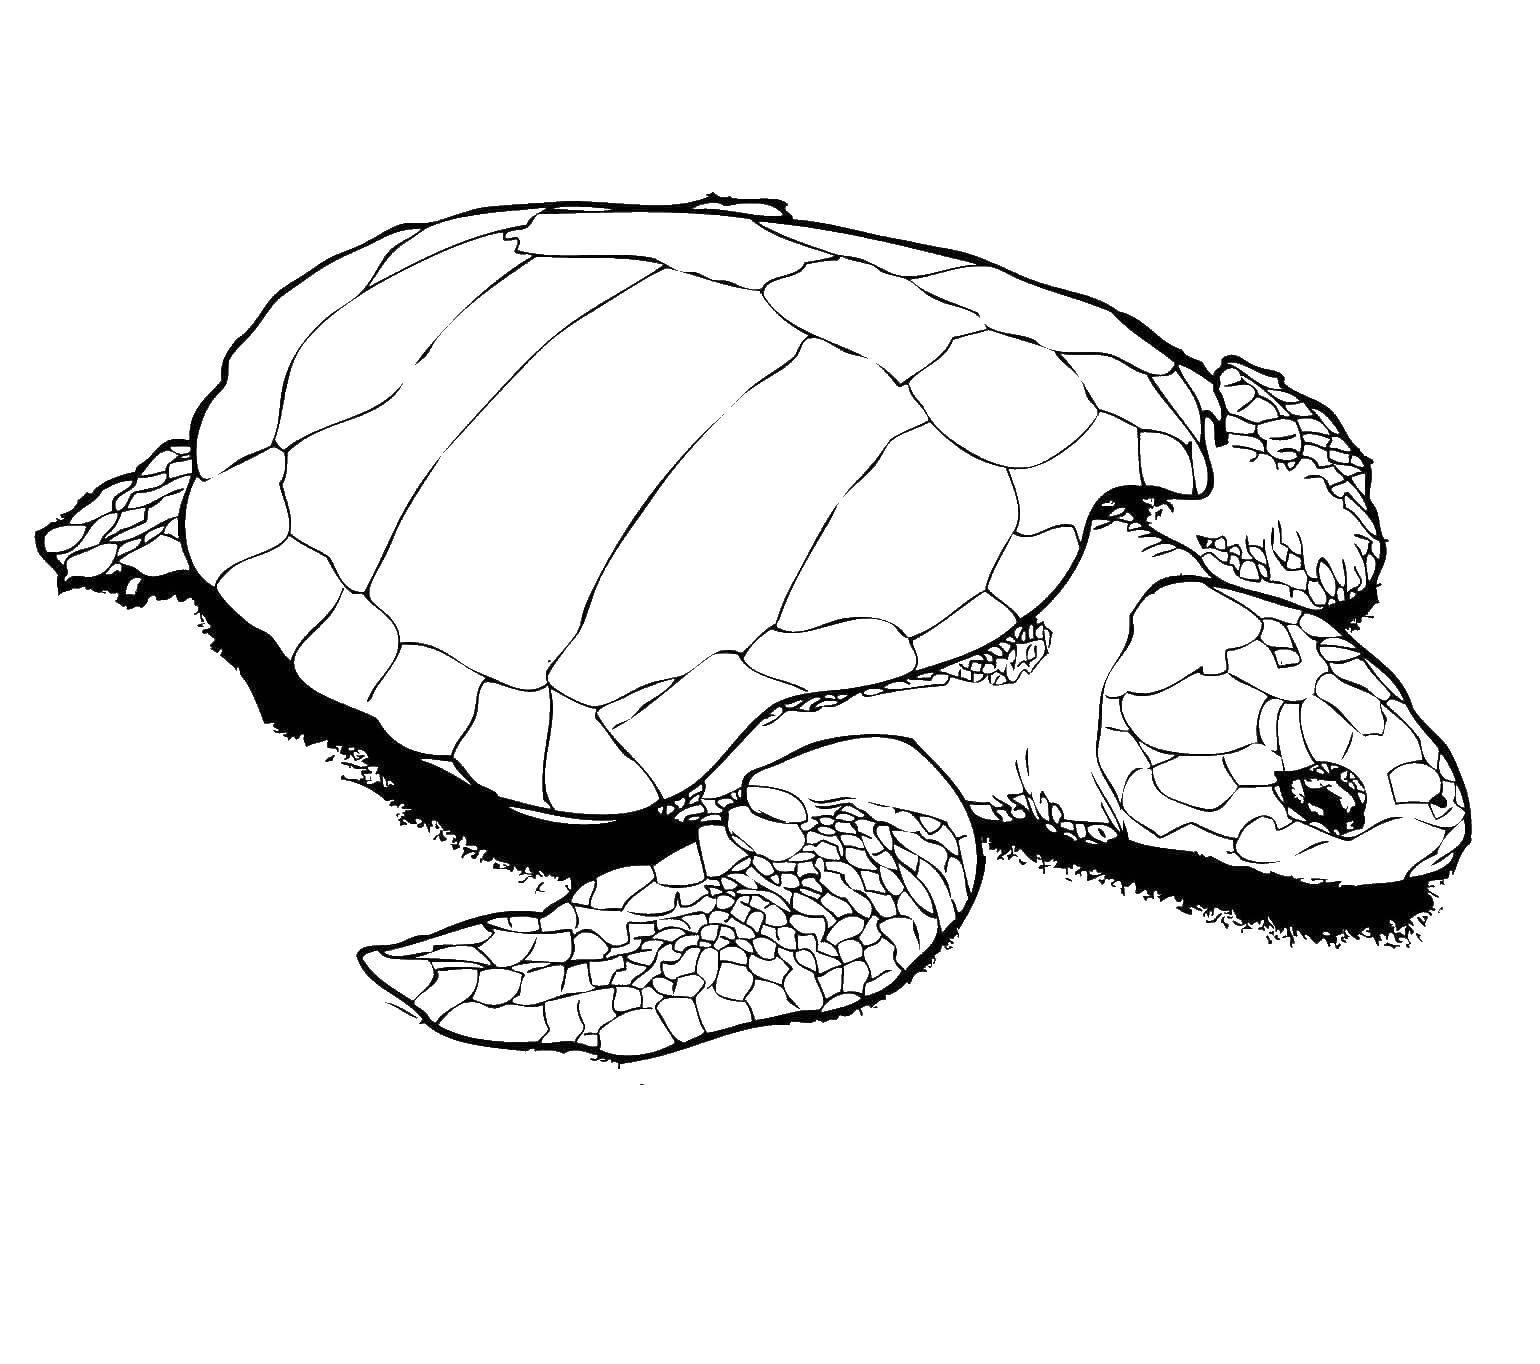 Coloring The wise turtle. Category marine. Tags:  Underwater world, turtle.